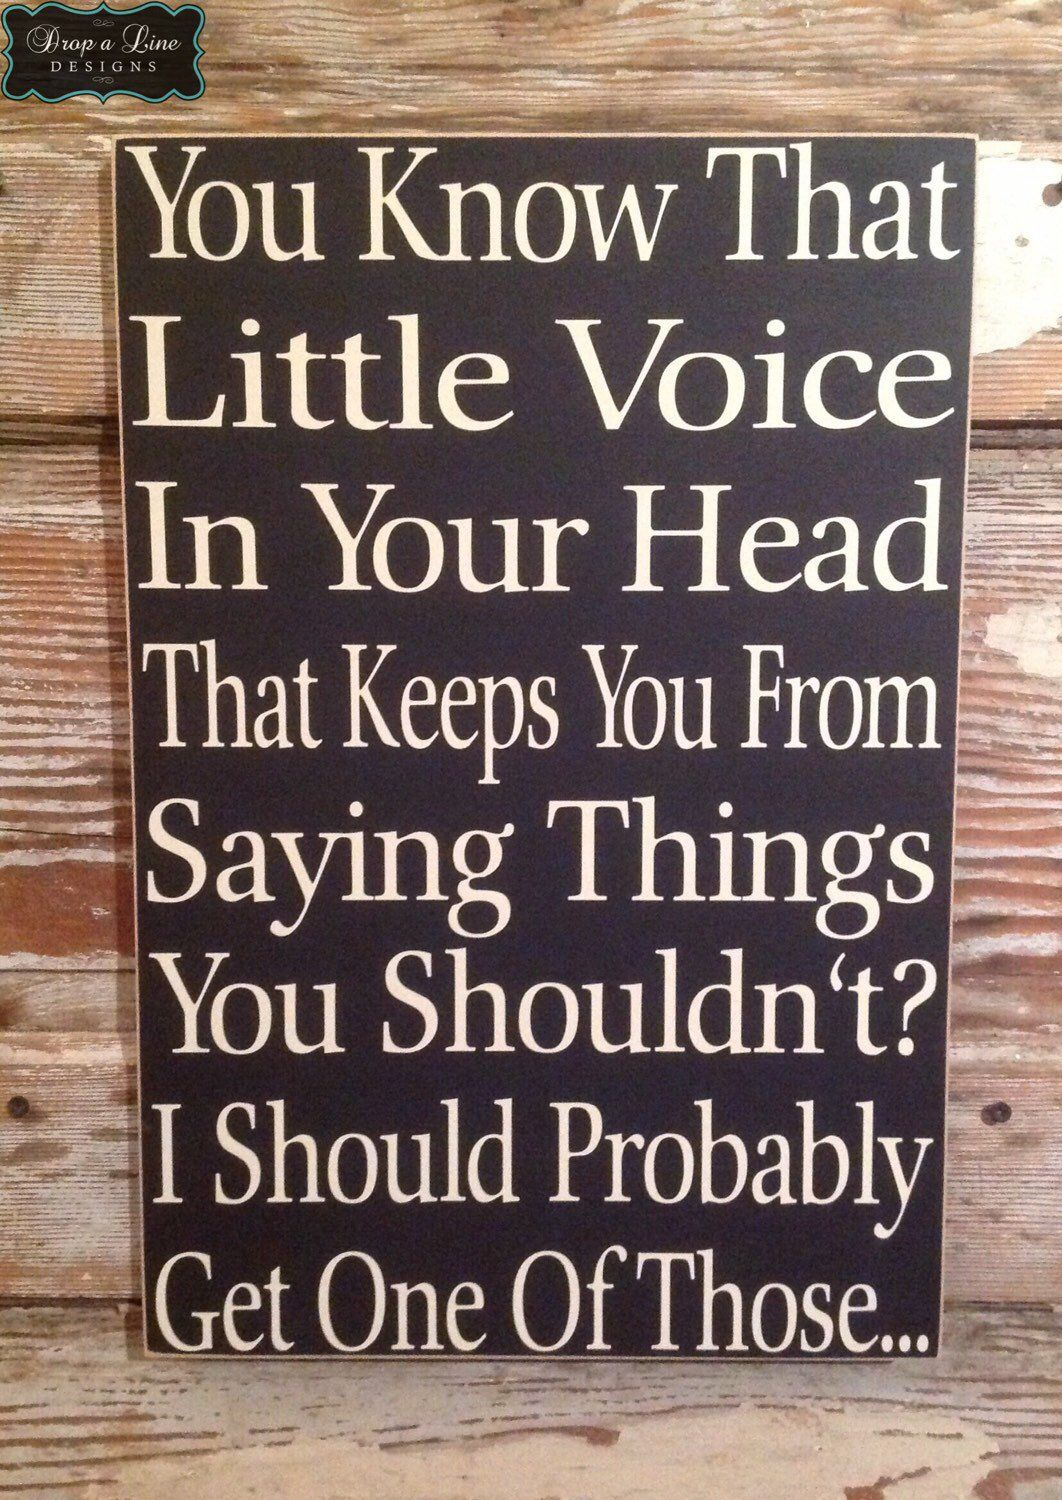 New Funny Signs Items similar to You Know That Little Voice In Your Head That Keeps You Fron Saying Things You Shouldn't?  I Should Probably Get One Of Those...  Funny Sign on Etsy 3